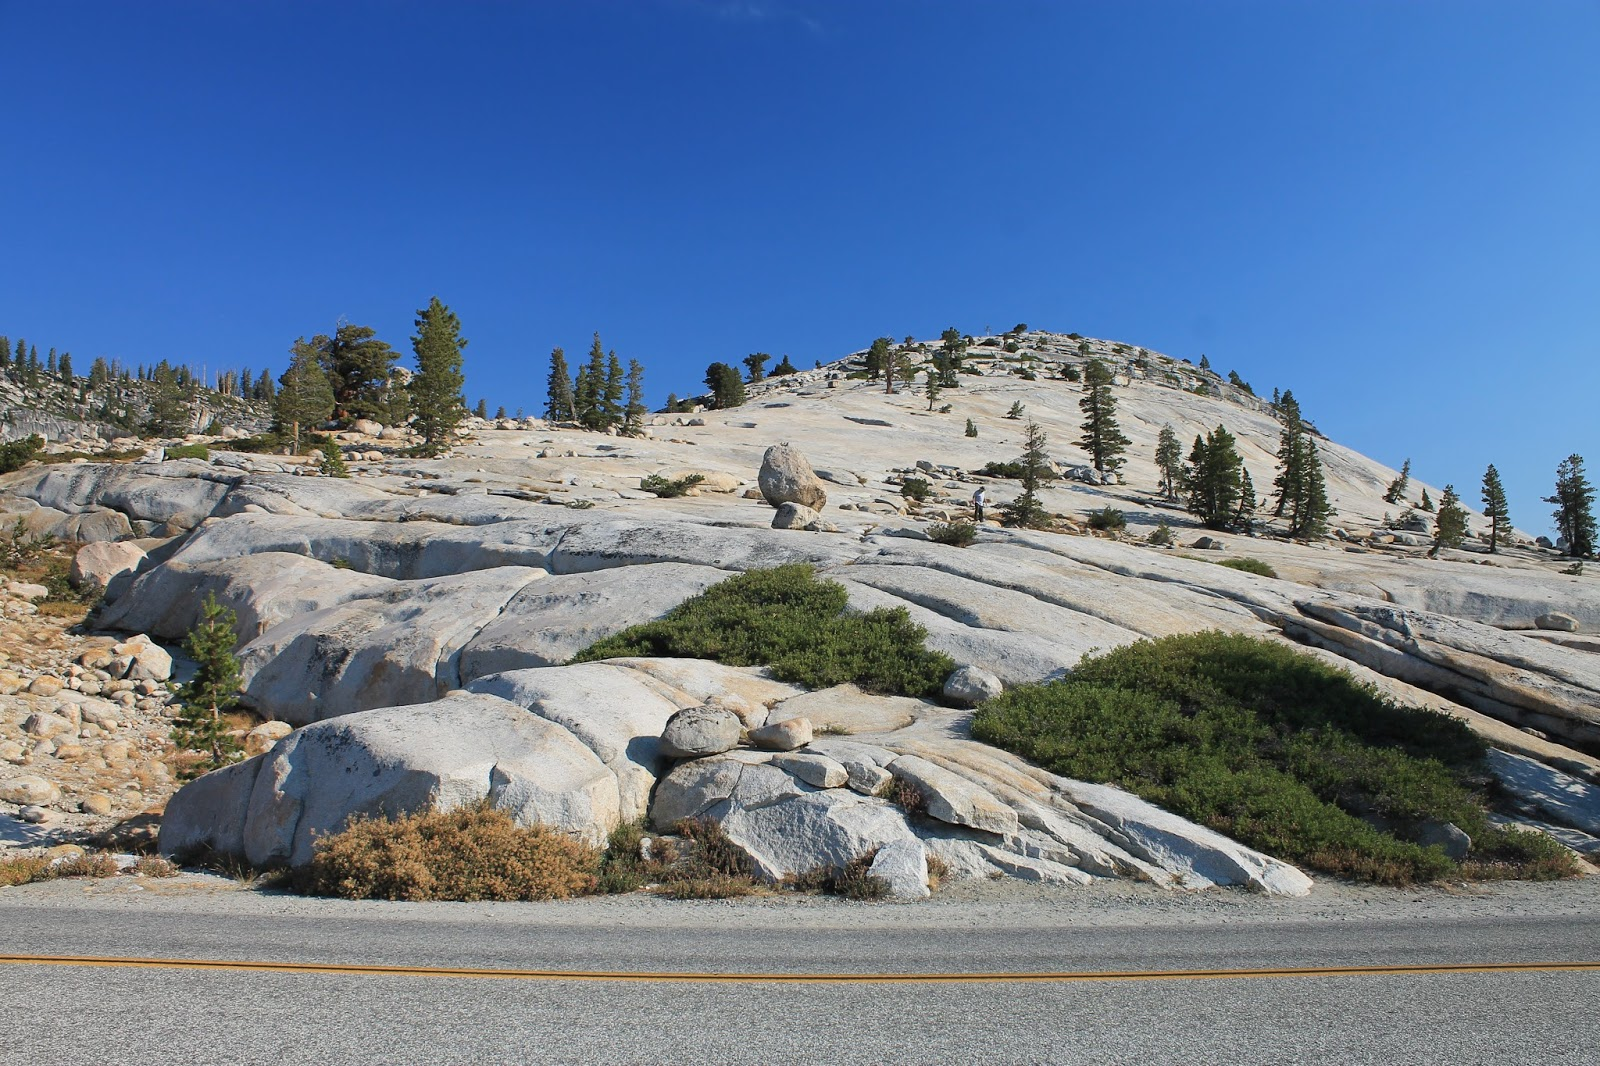 Yosemite National Park Tioga Pass geology travel field trip copyright rocdoctravel.com